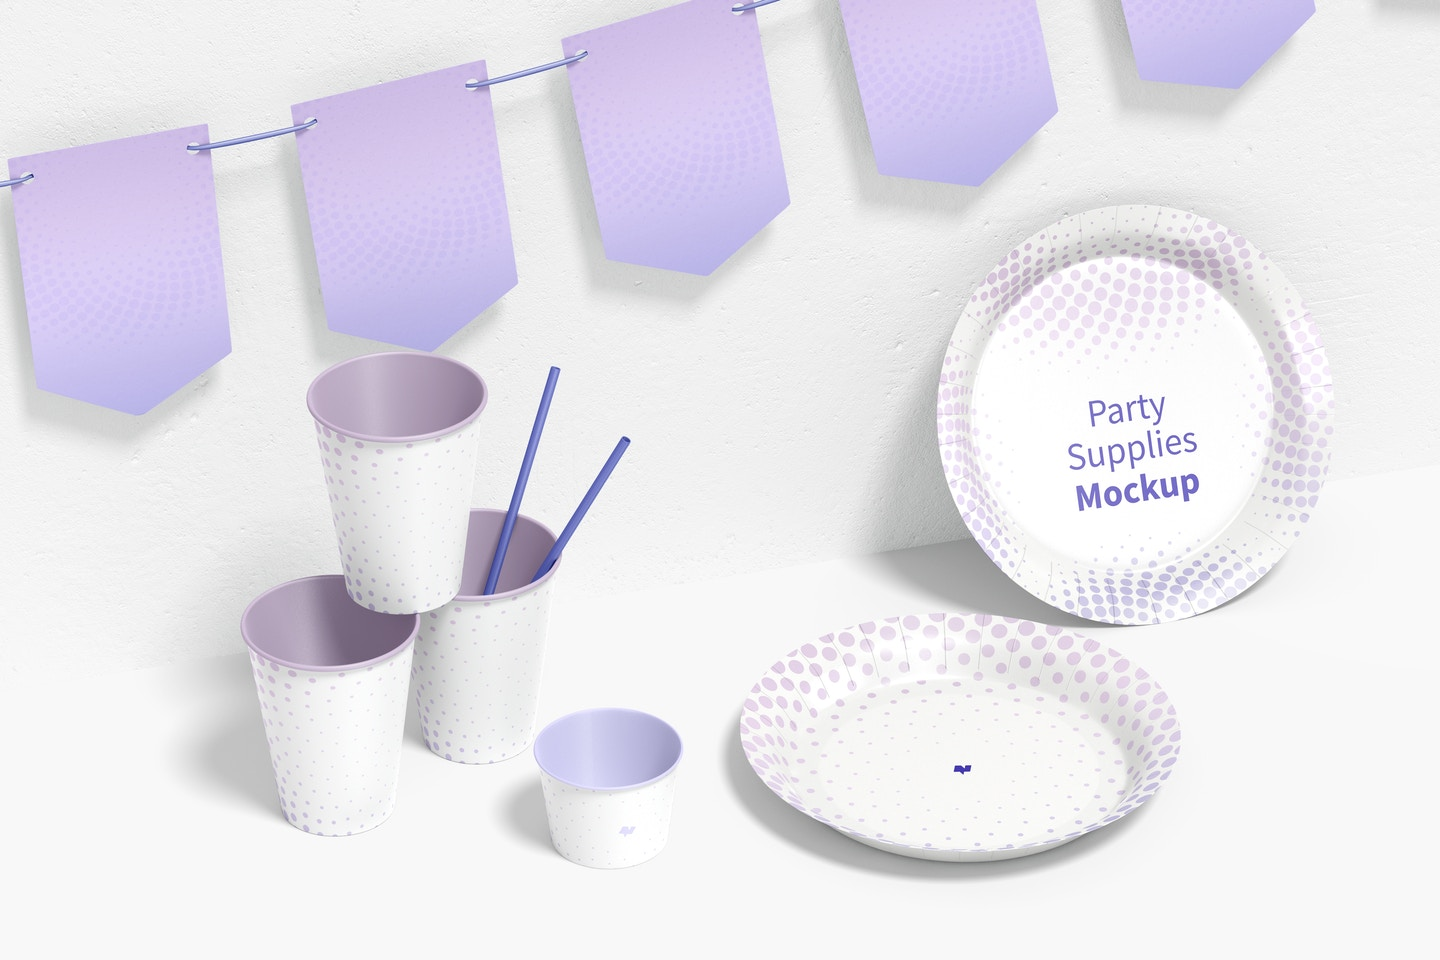 Party Supplies Mockup, Left View